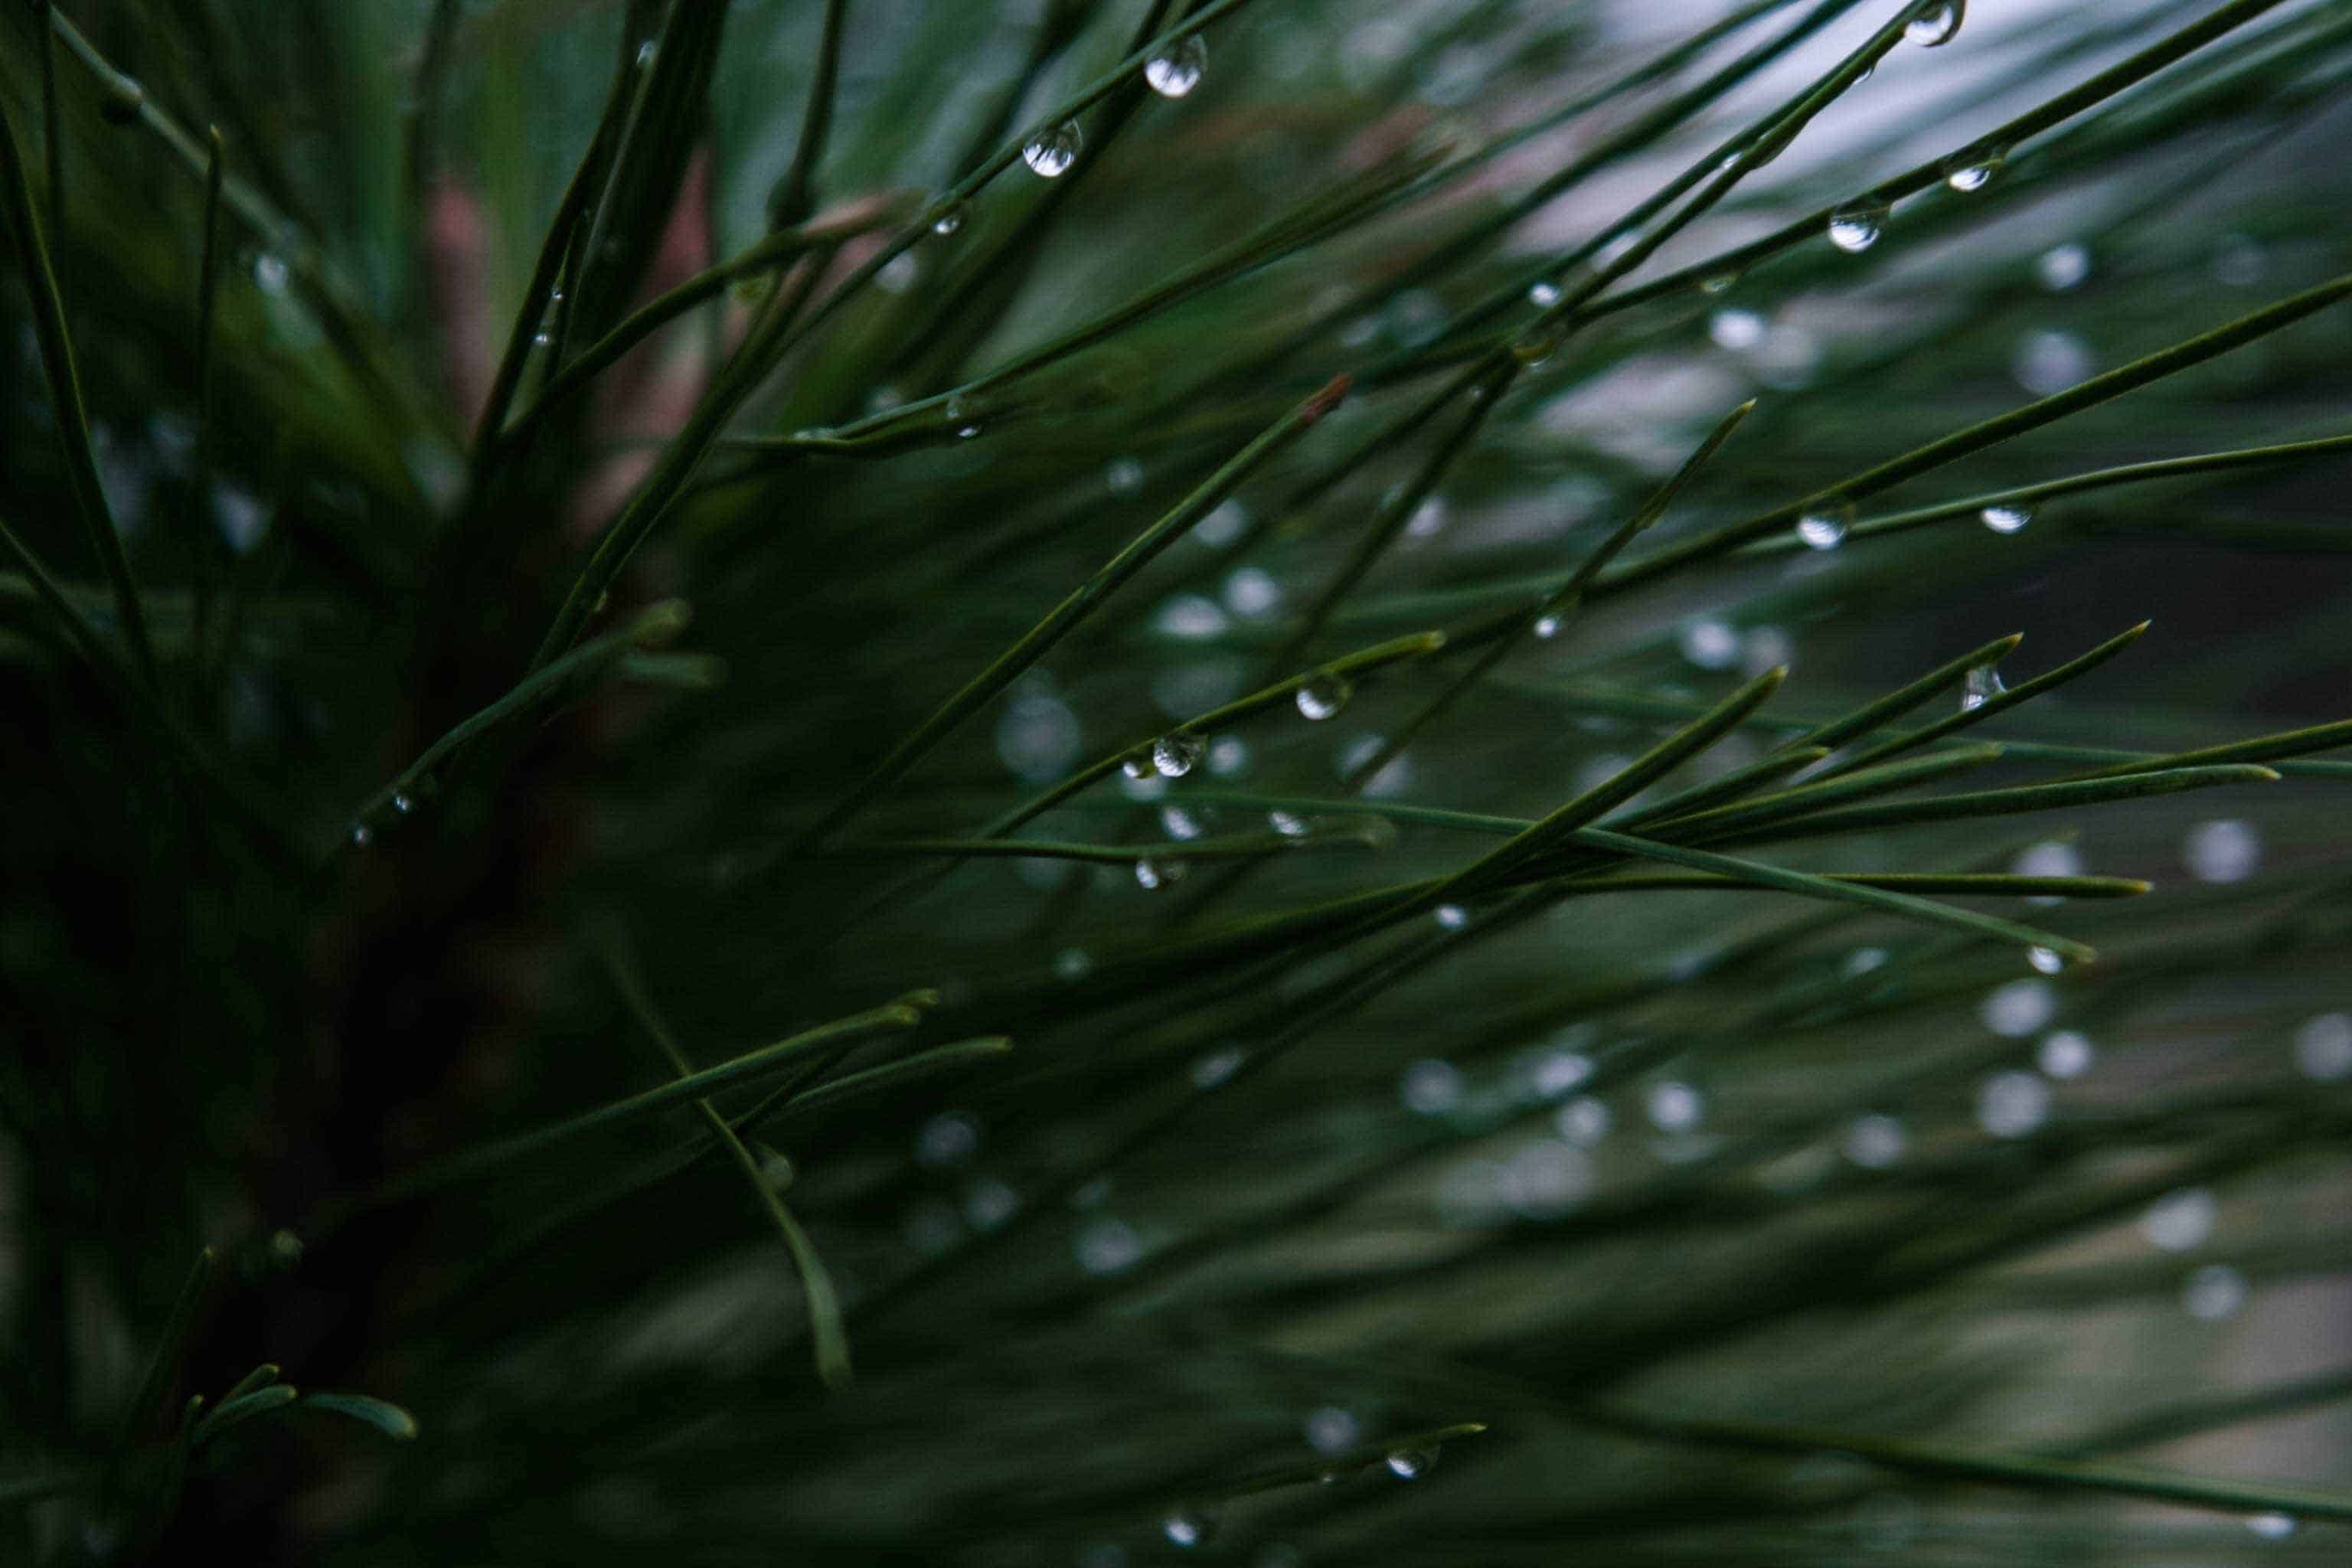 Pine Needle Tea Pine is one of my favorite plants (I admit to having many favorites!). The tree was